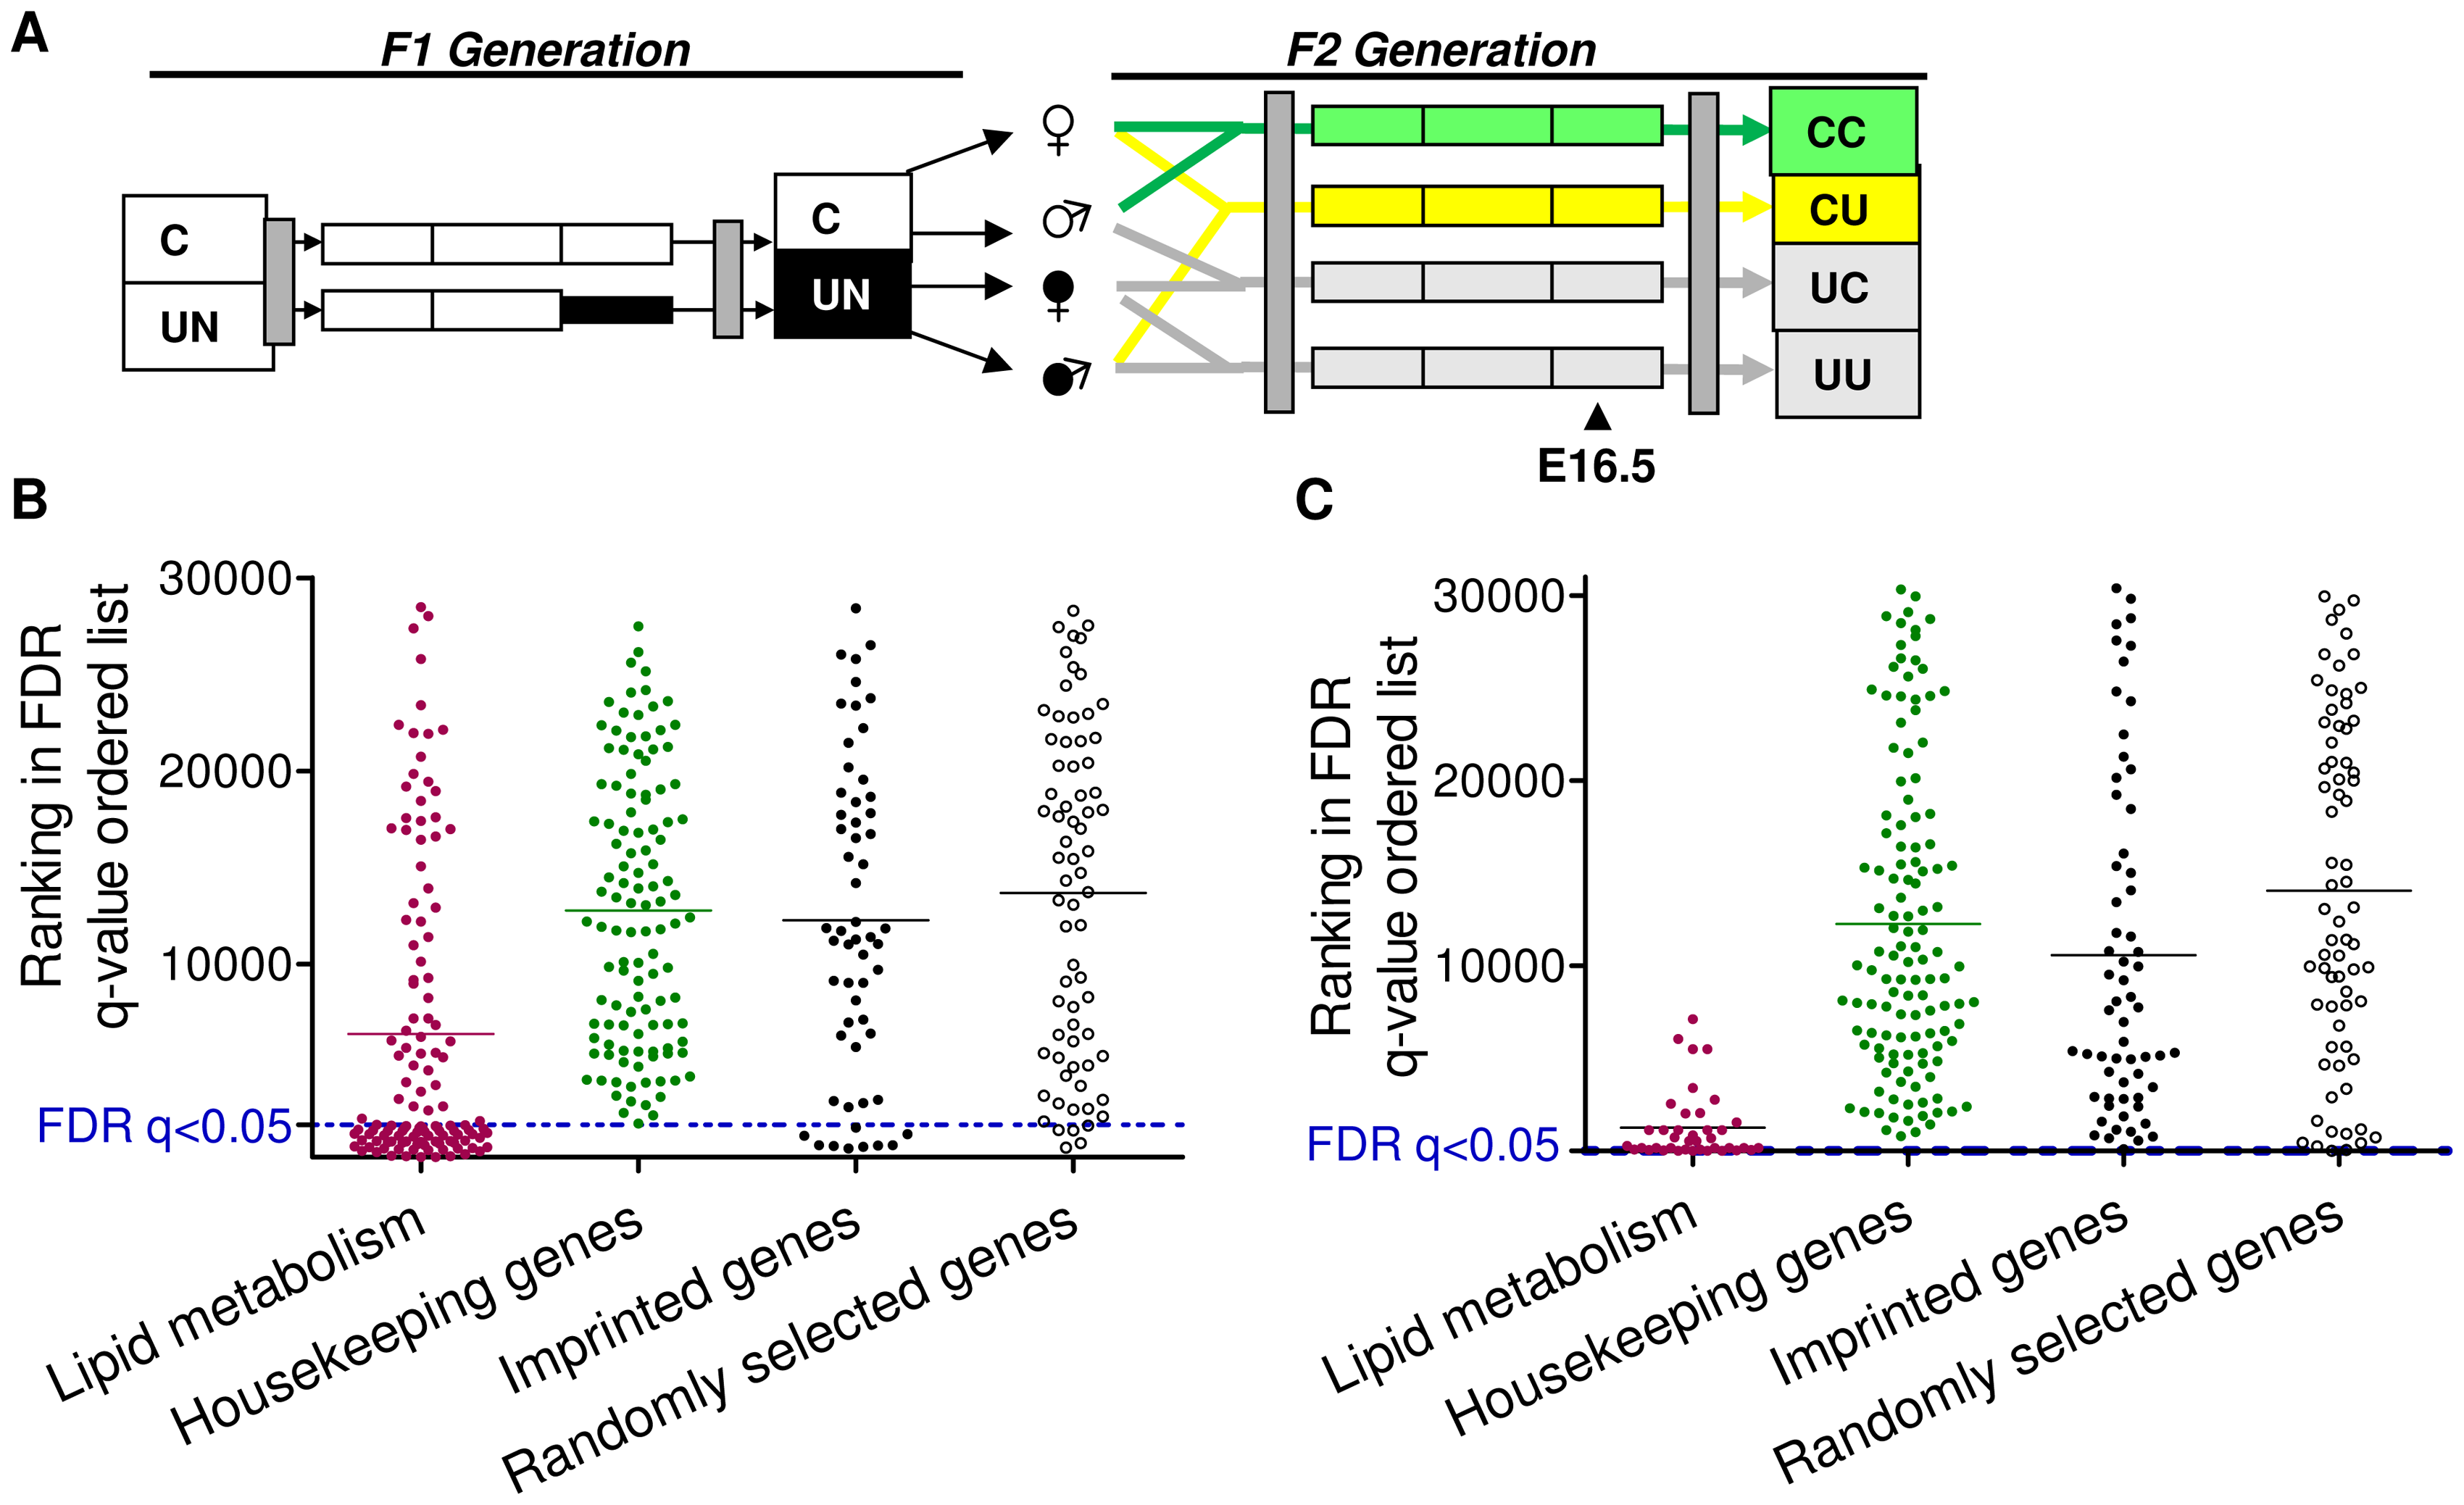 Characterisation of the F2 CU hepatic and placental transcriptome.